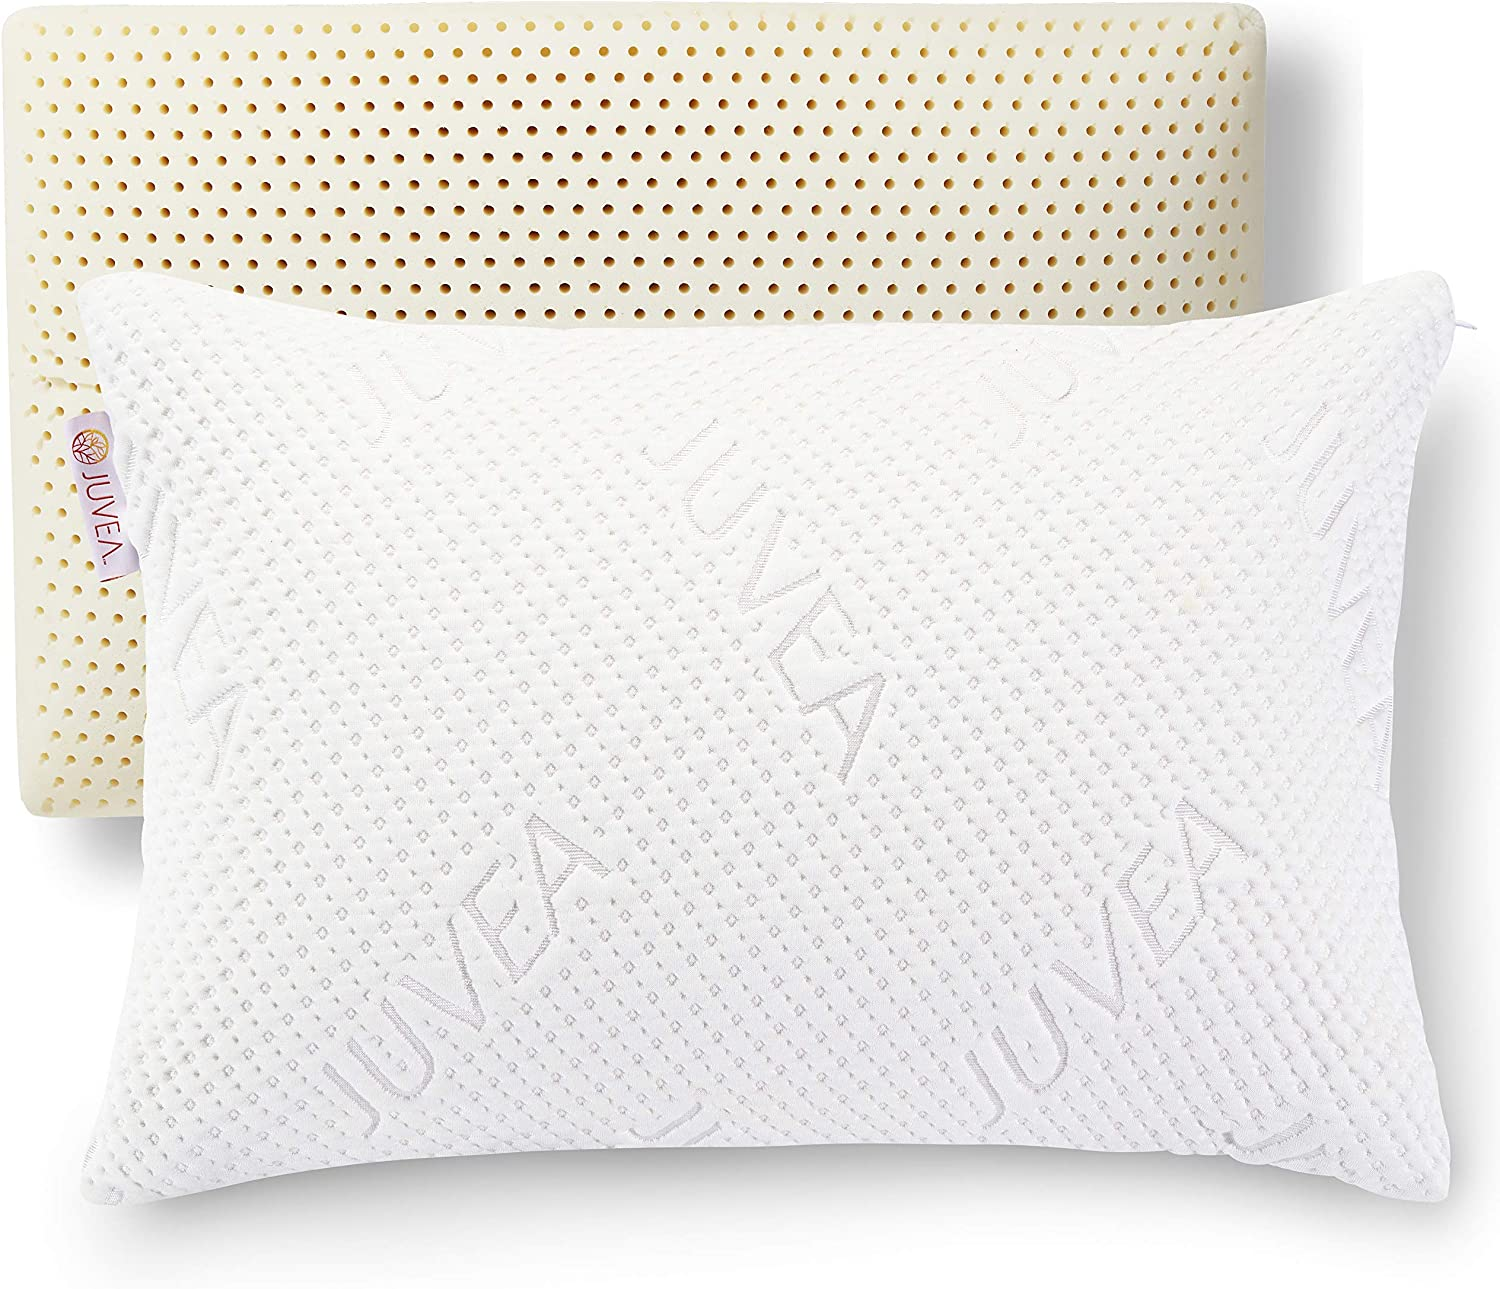 JUVEA 100% Natural, Talalay Latex Pillow, Absorbent, Cotton-Rich Cover, Best Sleeping Pillow to Support Head and Neck, Standard/Queen High Profile, Ideal for Side and Back Sleepers – Made in USA